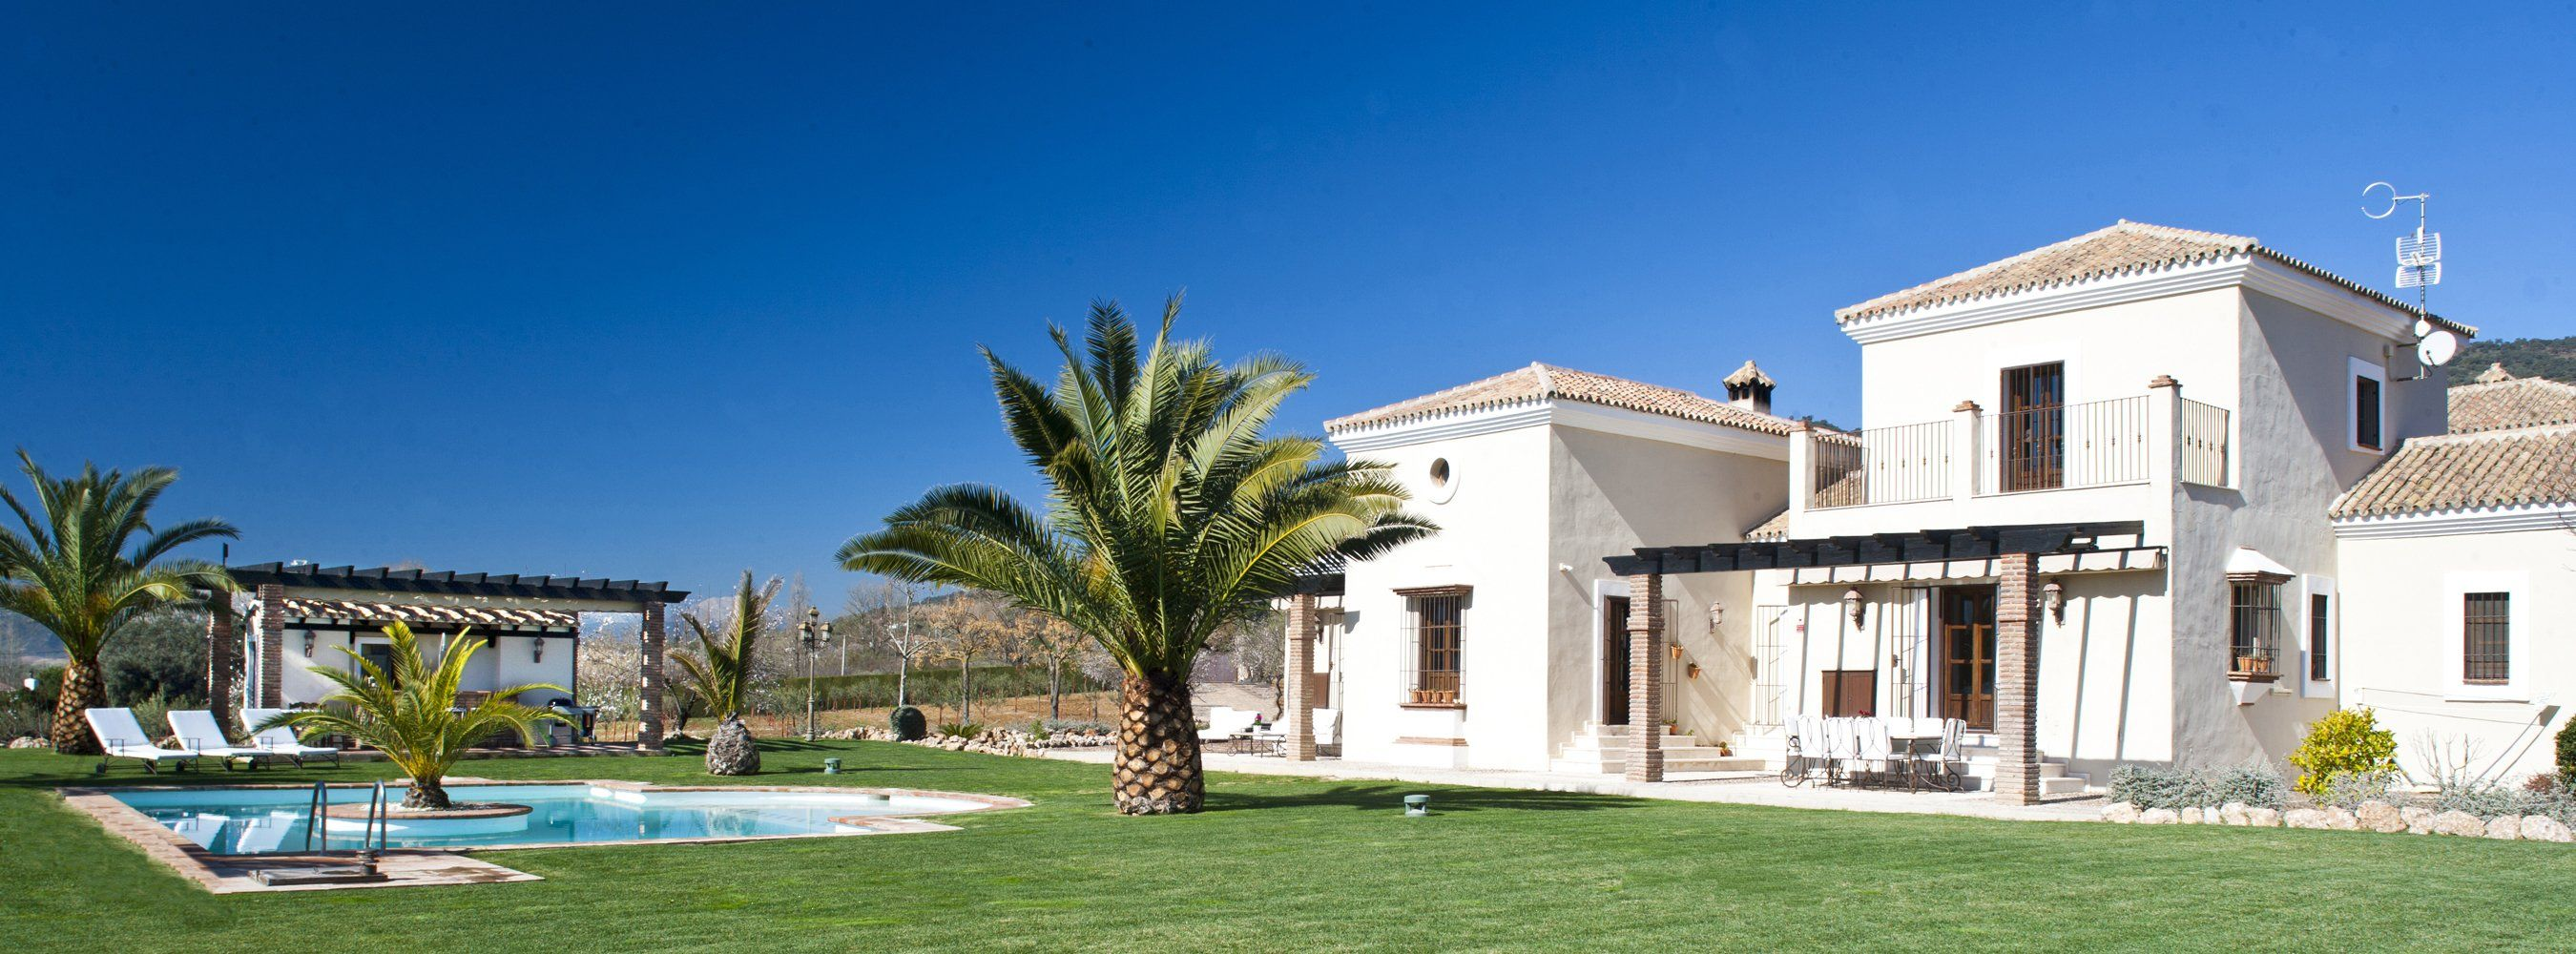 luxury villa and garden ronda